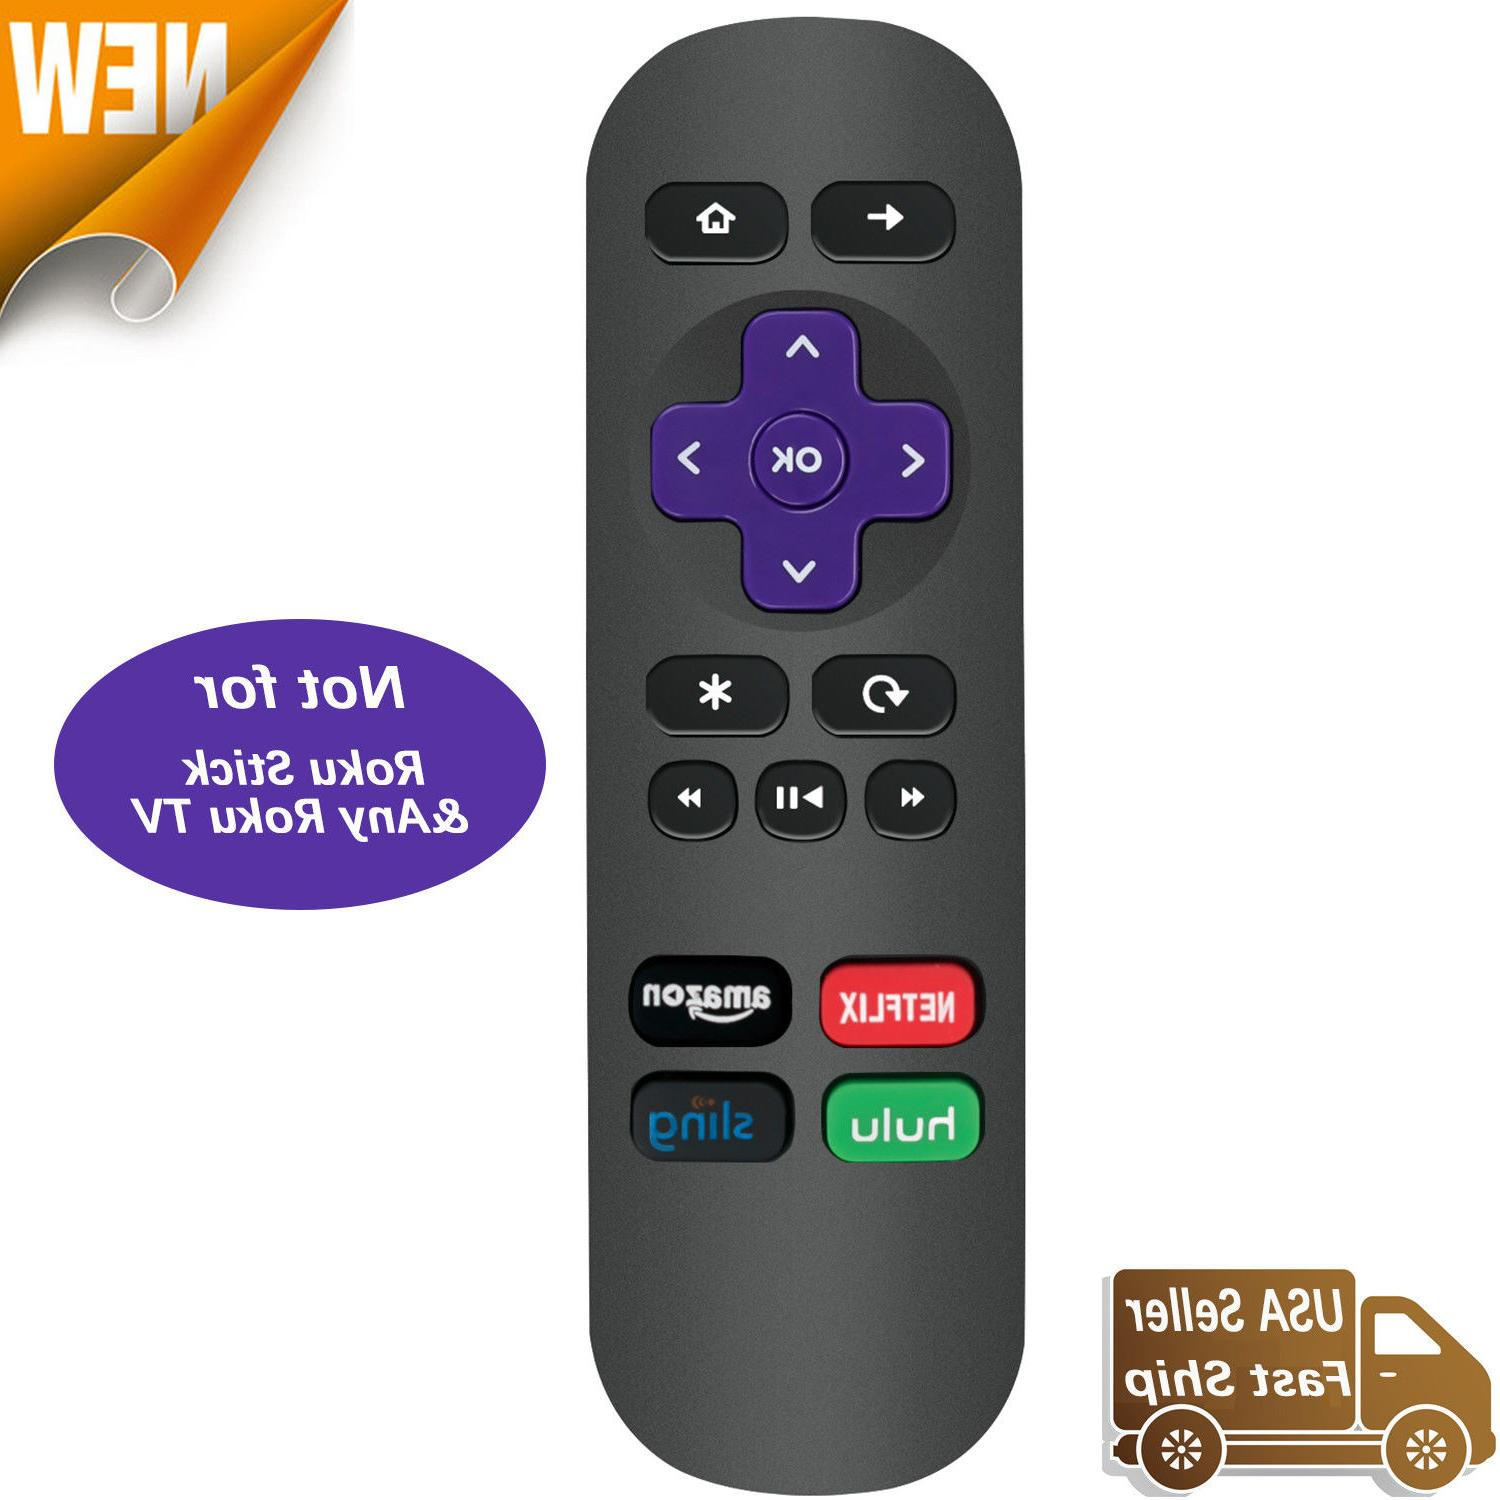 new replacement remote control for roku 1